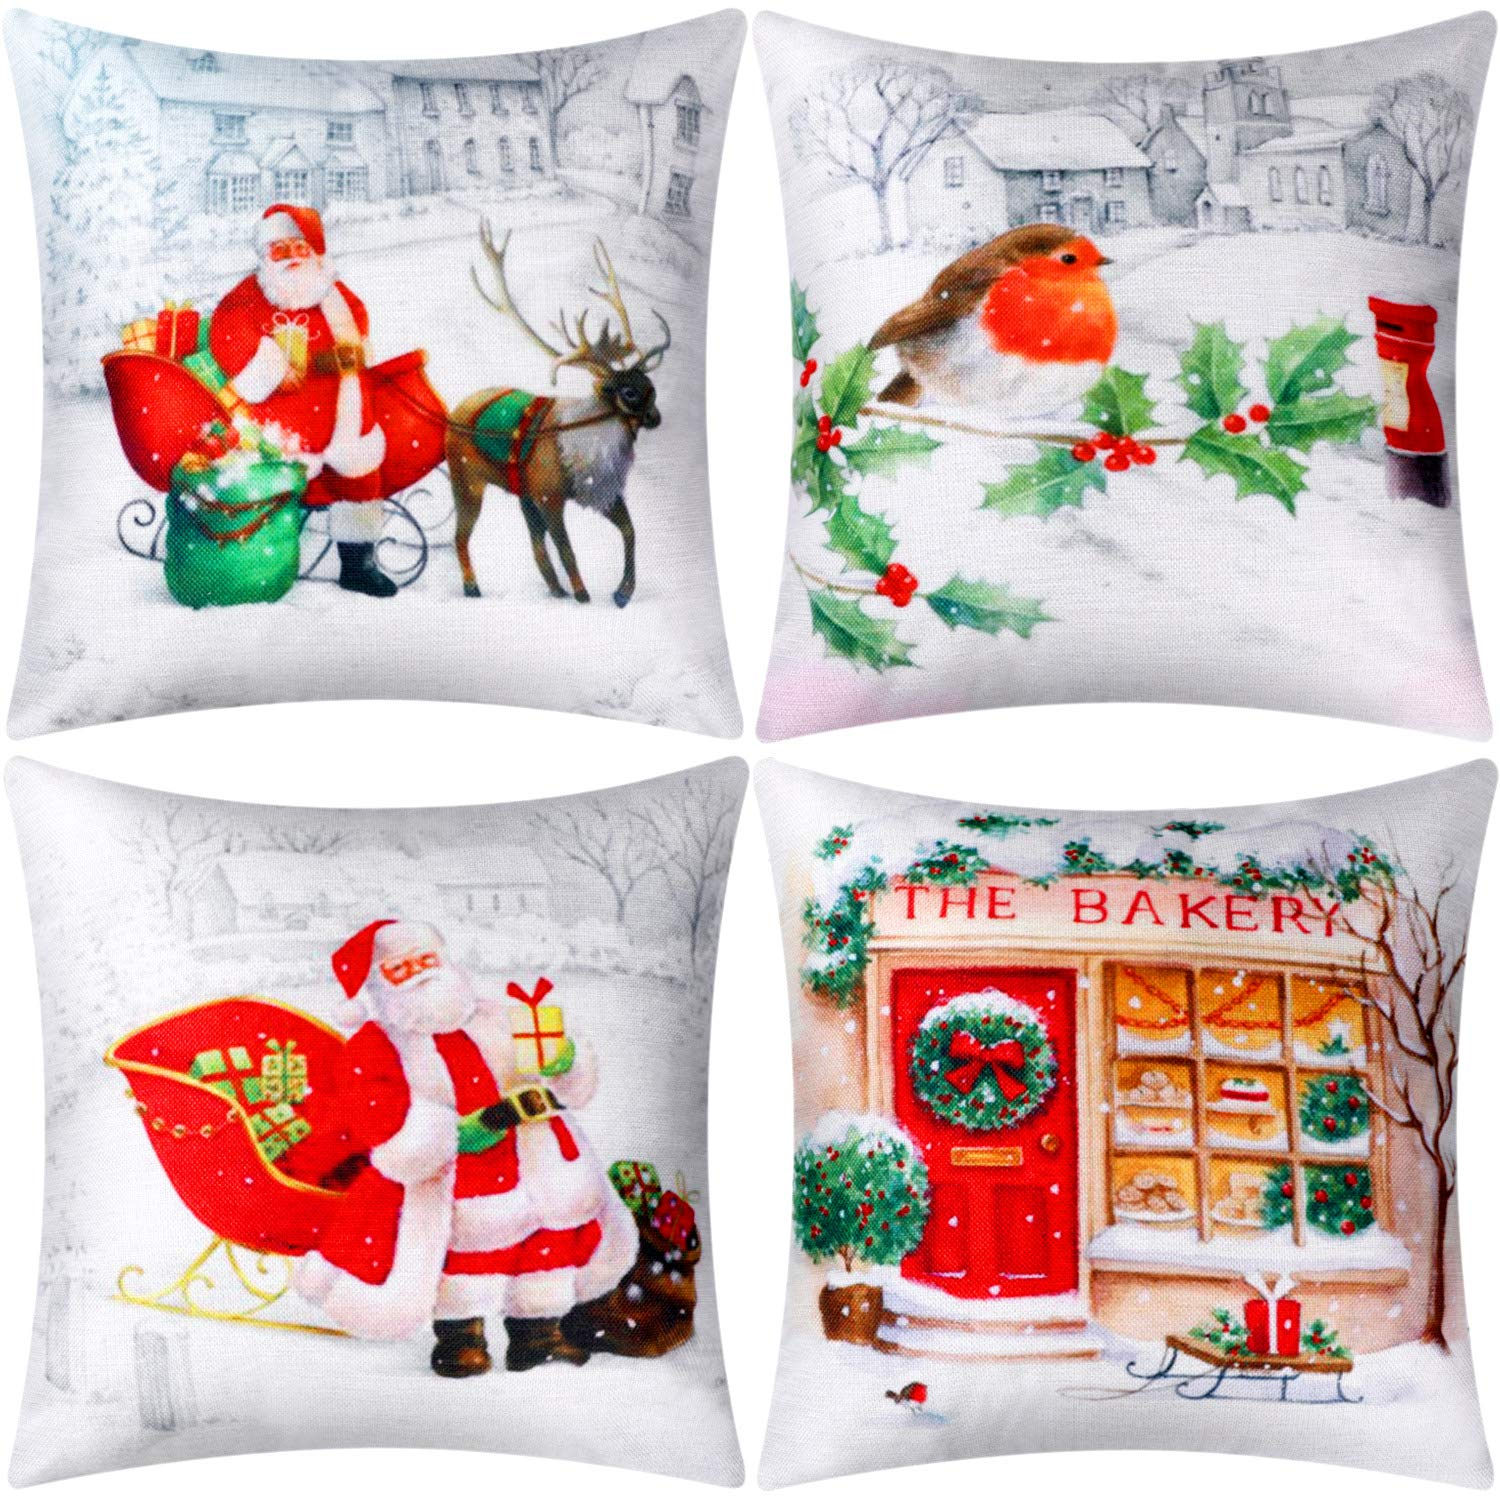 Jetec 4 Pieces Pillow Case Throw Cushion Cover Cotton Linen Pillow Decorations for Halloween Thanksgiving Christmas Autumn, 18 by 18 inch (Color Set 14)